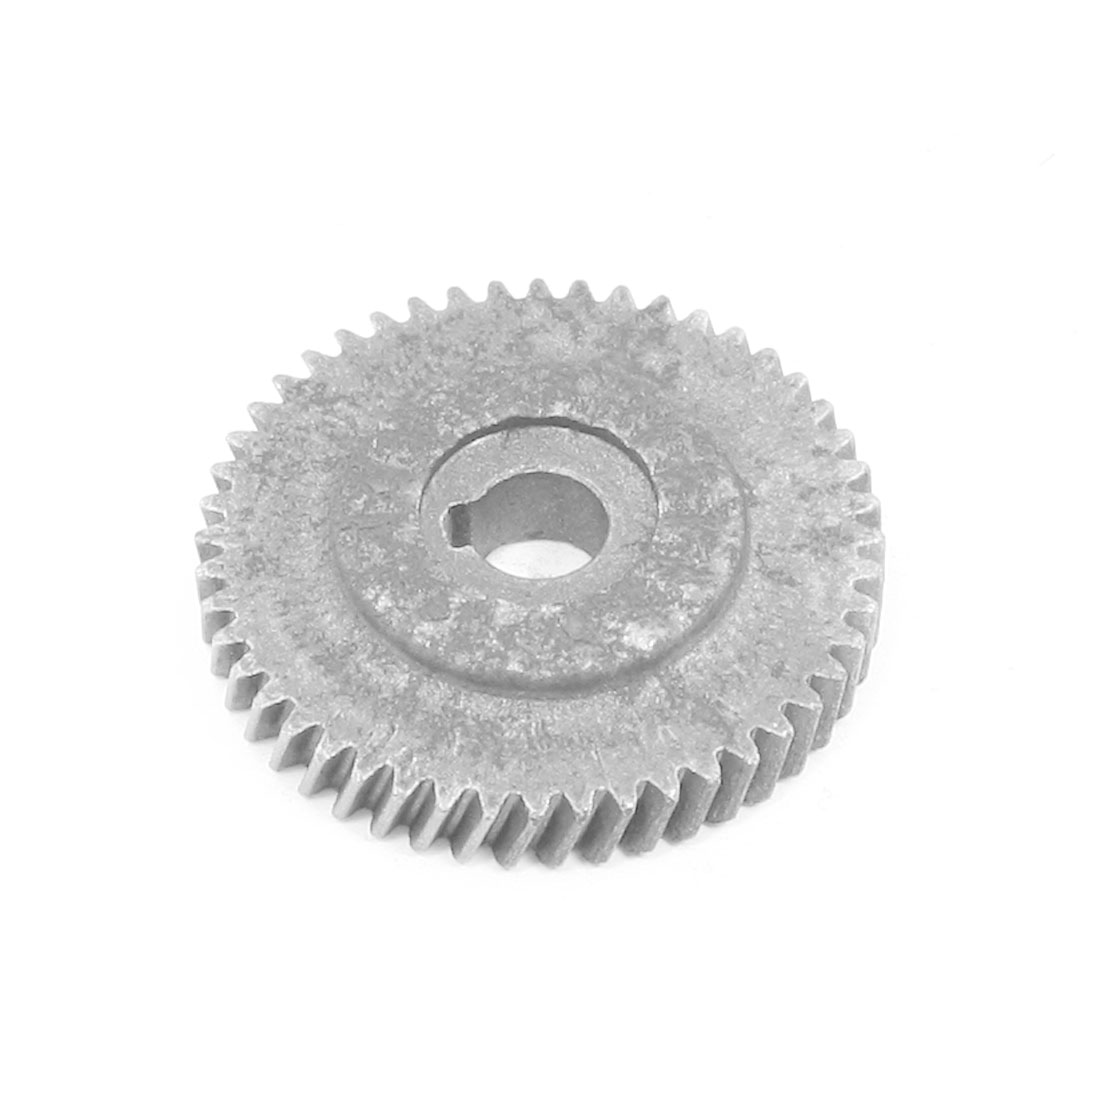 Replacement Part Helical Gear Wheel 48 Teeth for Power Tool